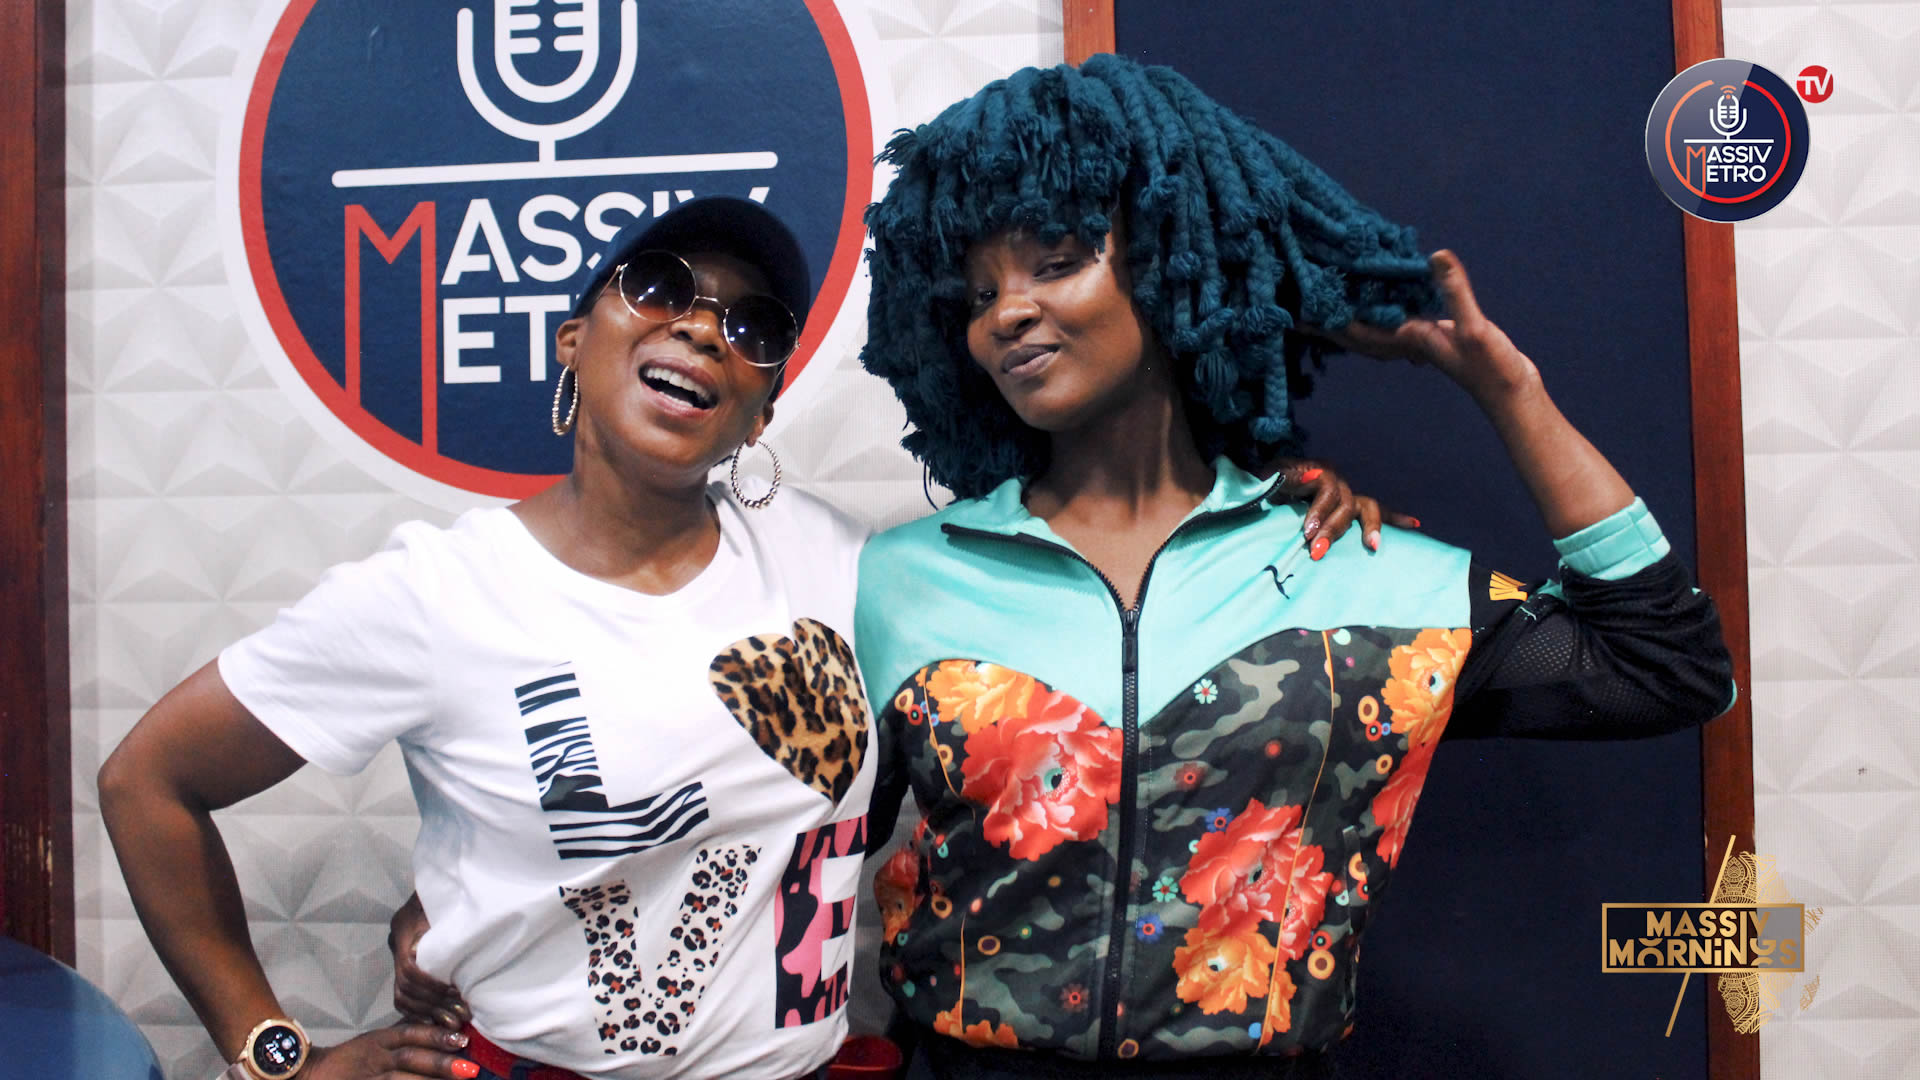 Moonchild Sanelly Hangs with Massiv Mornings and Drops an Exclusive Song